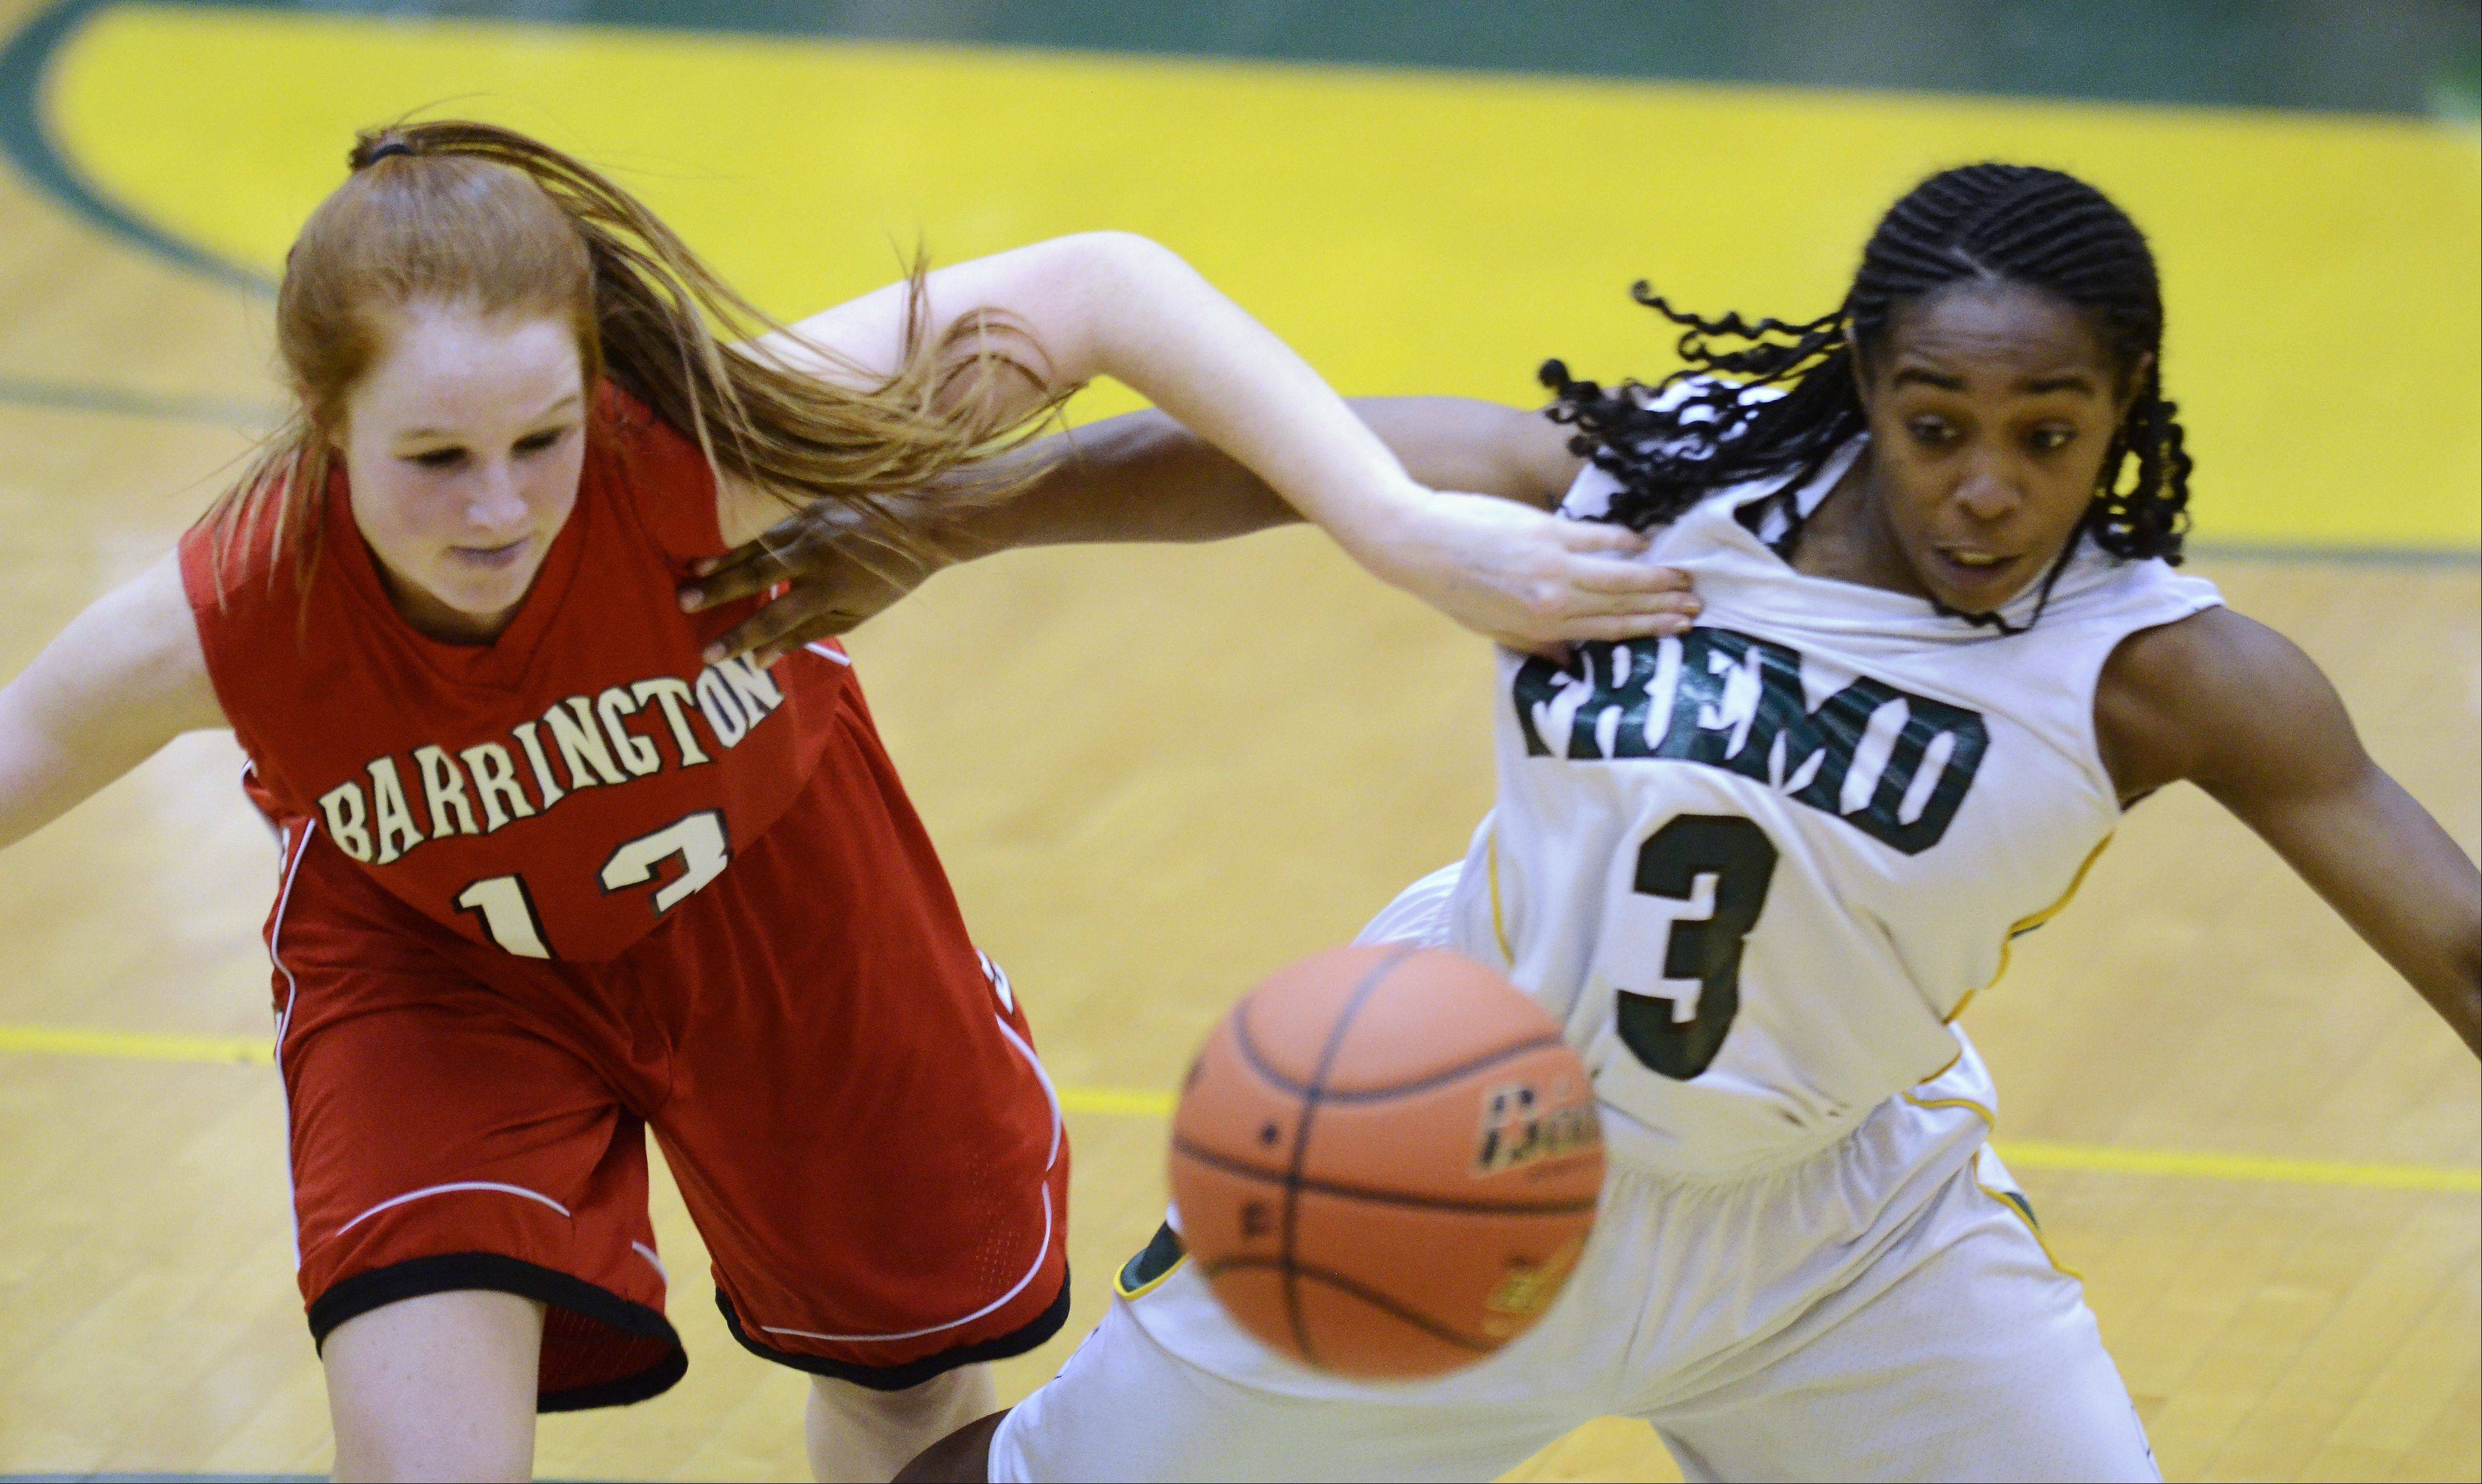 Barrington�s Carrie Madden, left, and Fremd�s Brianna Lewis chase down the ball during Friday�s game.